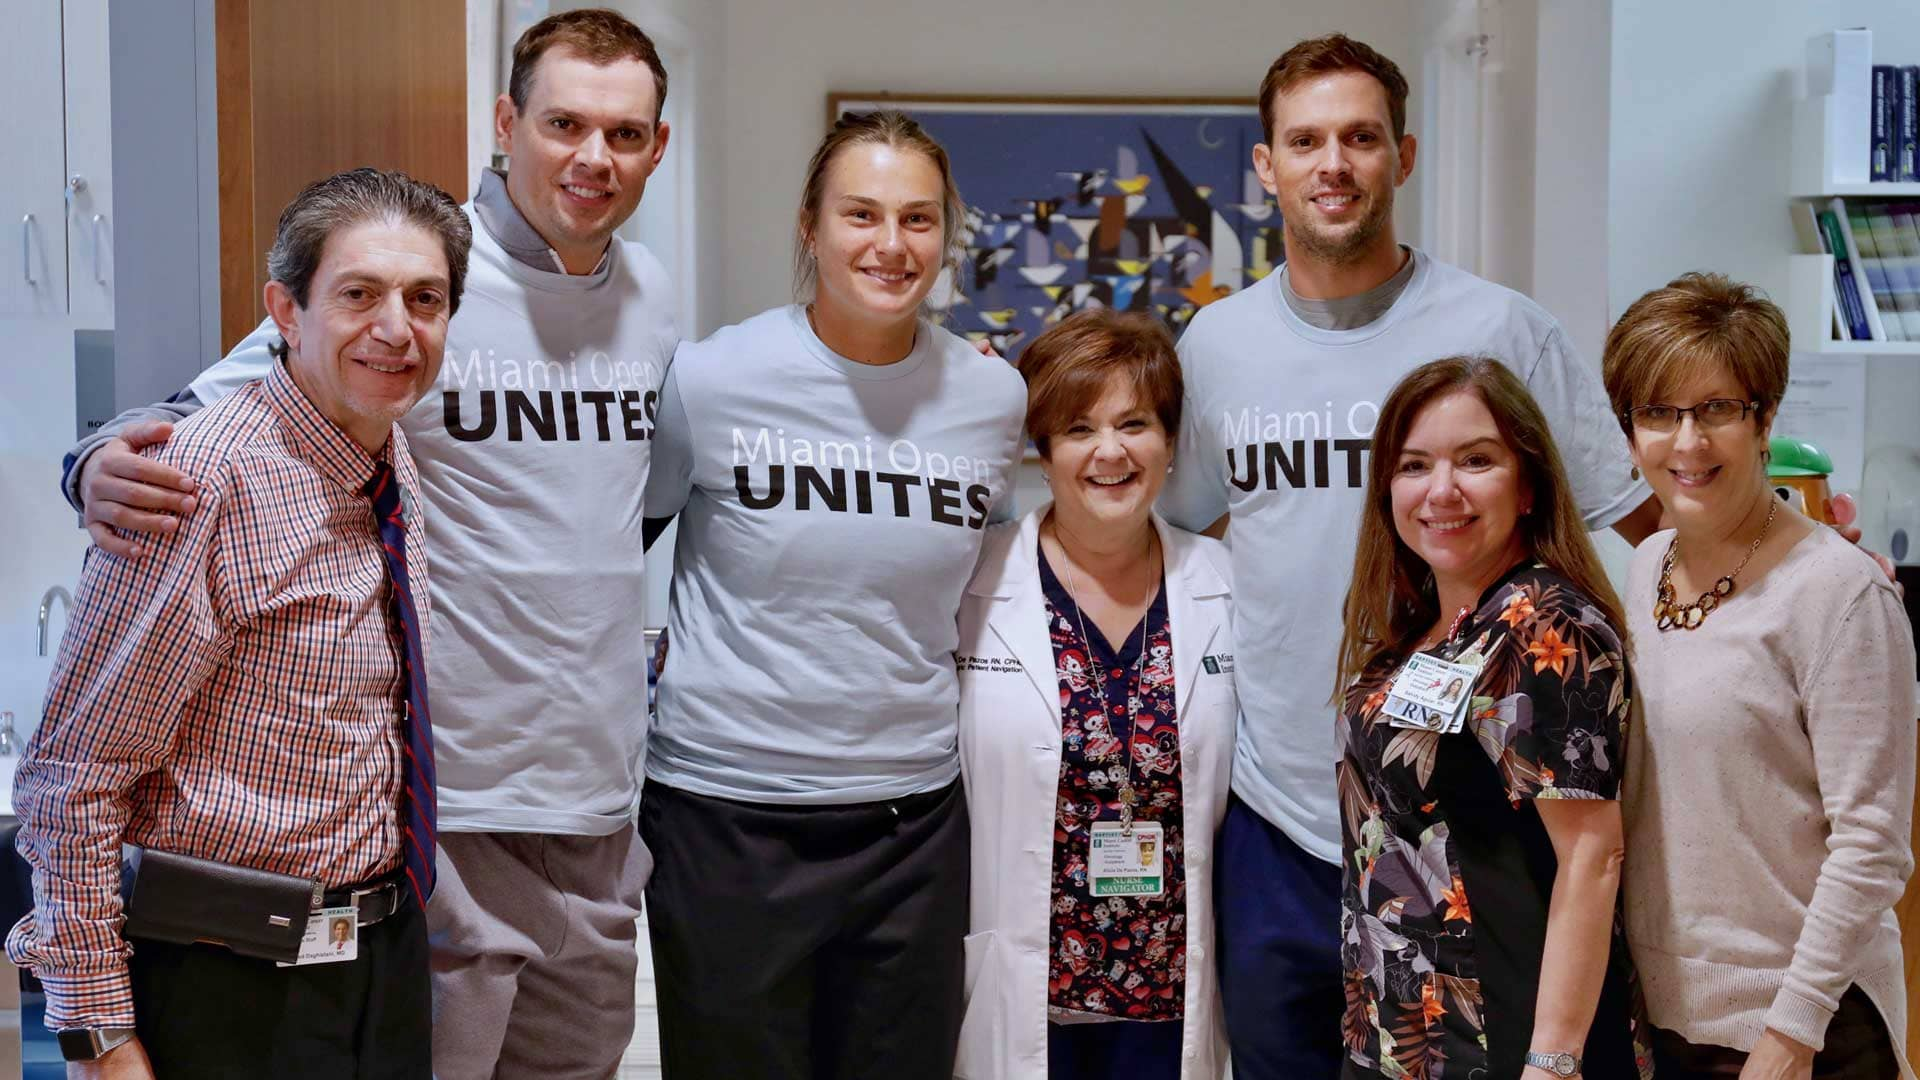 The Bryan Brothers and Aryna Sabalenka lent their time during Miami Unites Day.